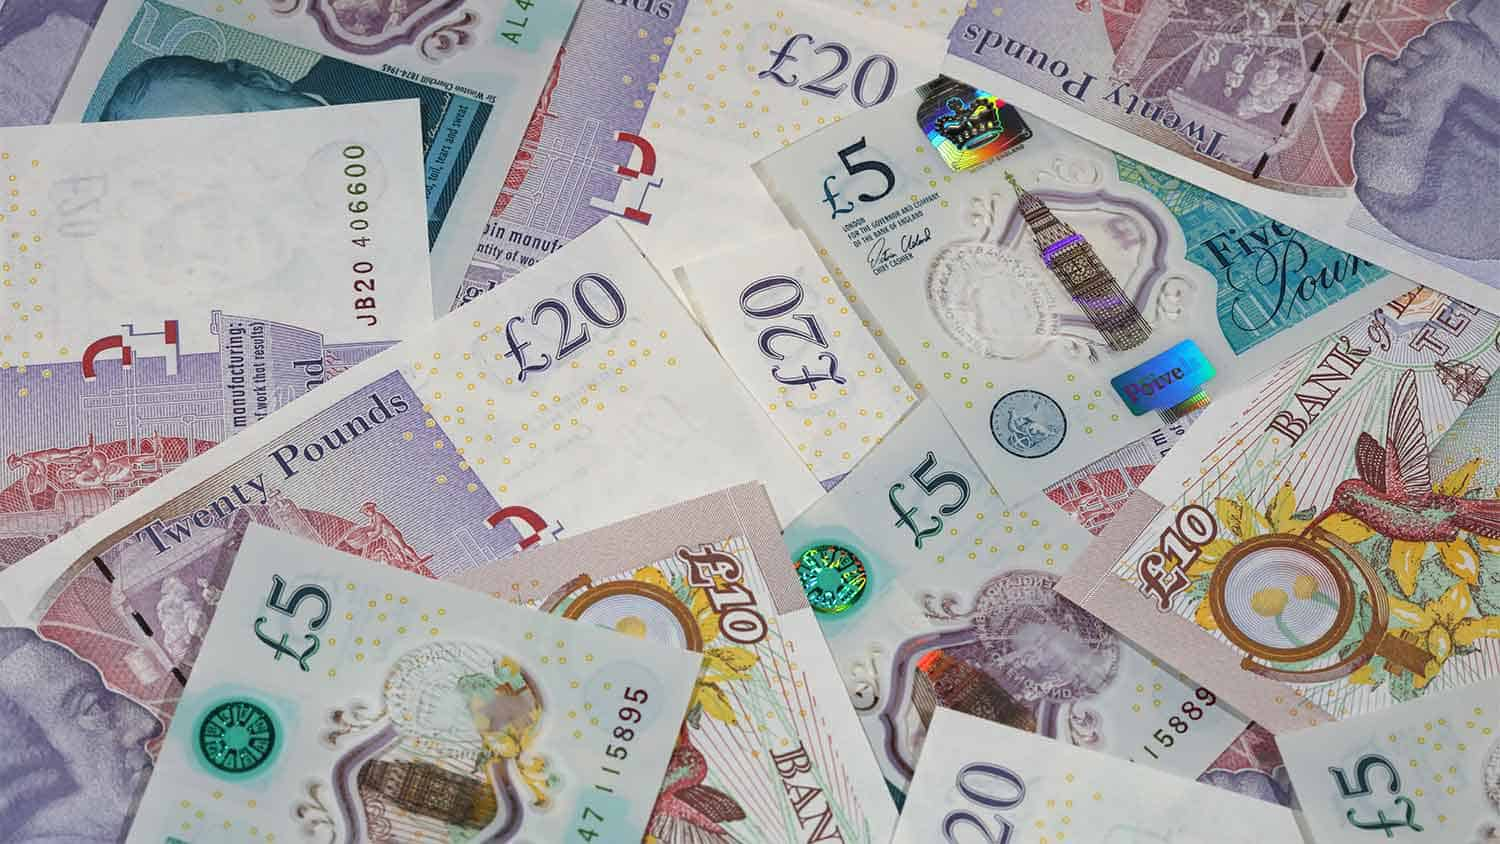 Different denominations of £ notes on a table.